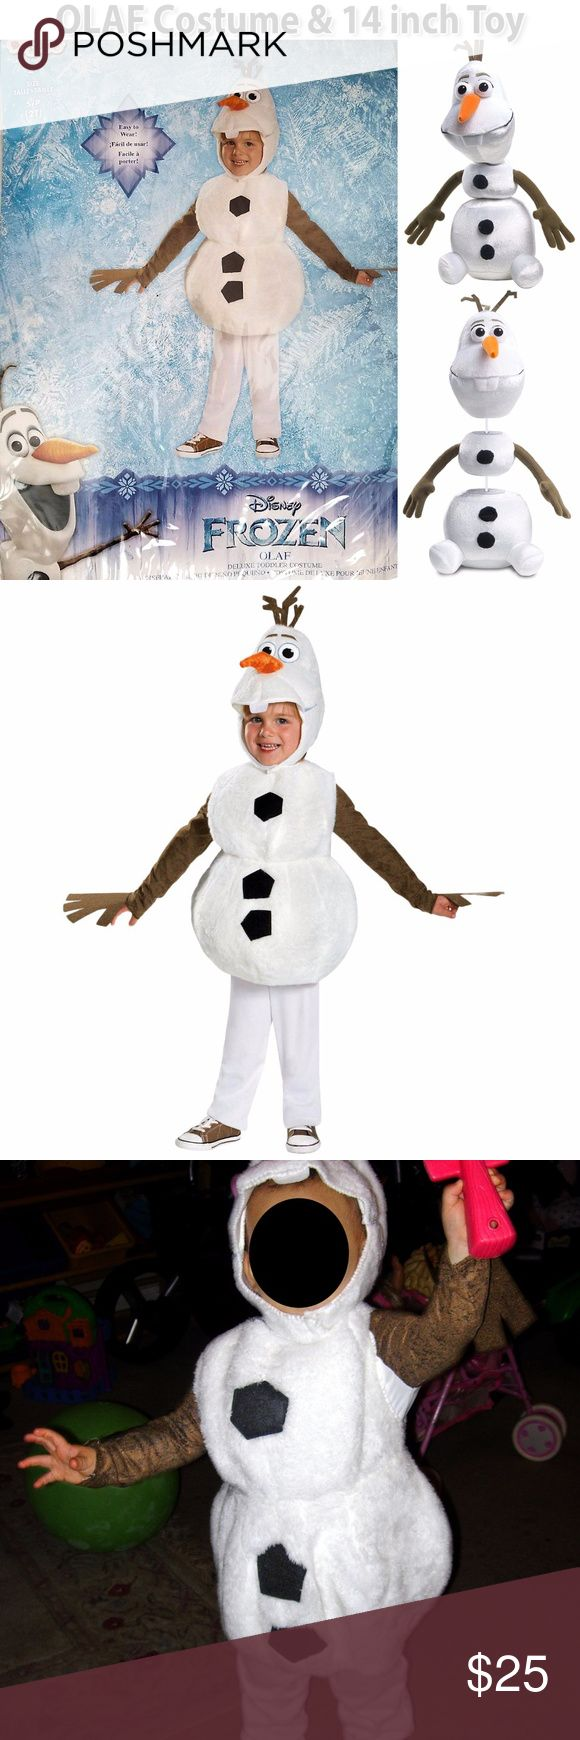 """Disney Frozen Olaf Costume & Toy Disney Frozen Olaf Baby Toddler Size 2T Toddler Costume with 14"""" Pull Apart Talking Olaf This item comes with a jumpsuit with brown stick-like sleeves, snowman foam overlay and soft character headpiece. Costume Condition: Pre-owned, EXCELLENT gently used condition. Worn once! Free of stains, scuffs and damages. Very clean from smoke-free home. Pull Apart & Talkin' Olaf Features:  Pull him apart and put him back together while he says silly phrases! Press…"""